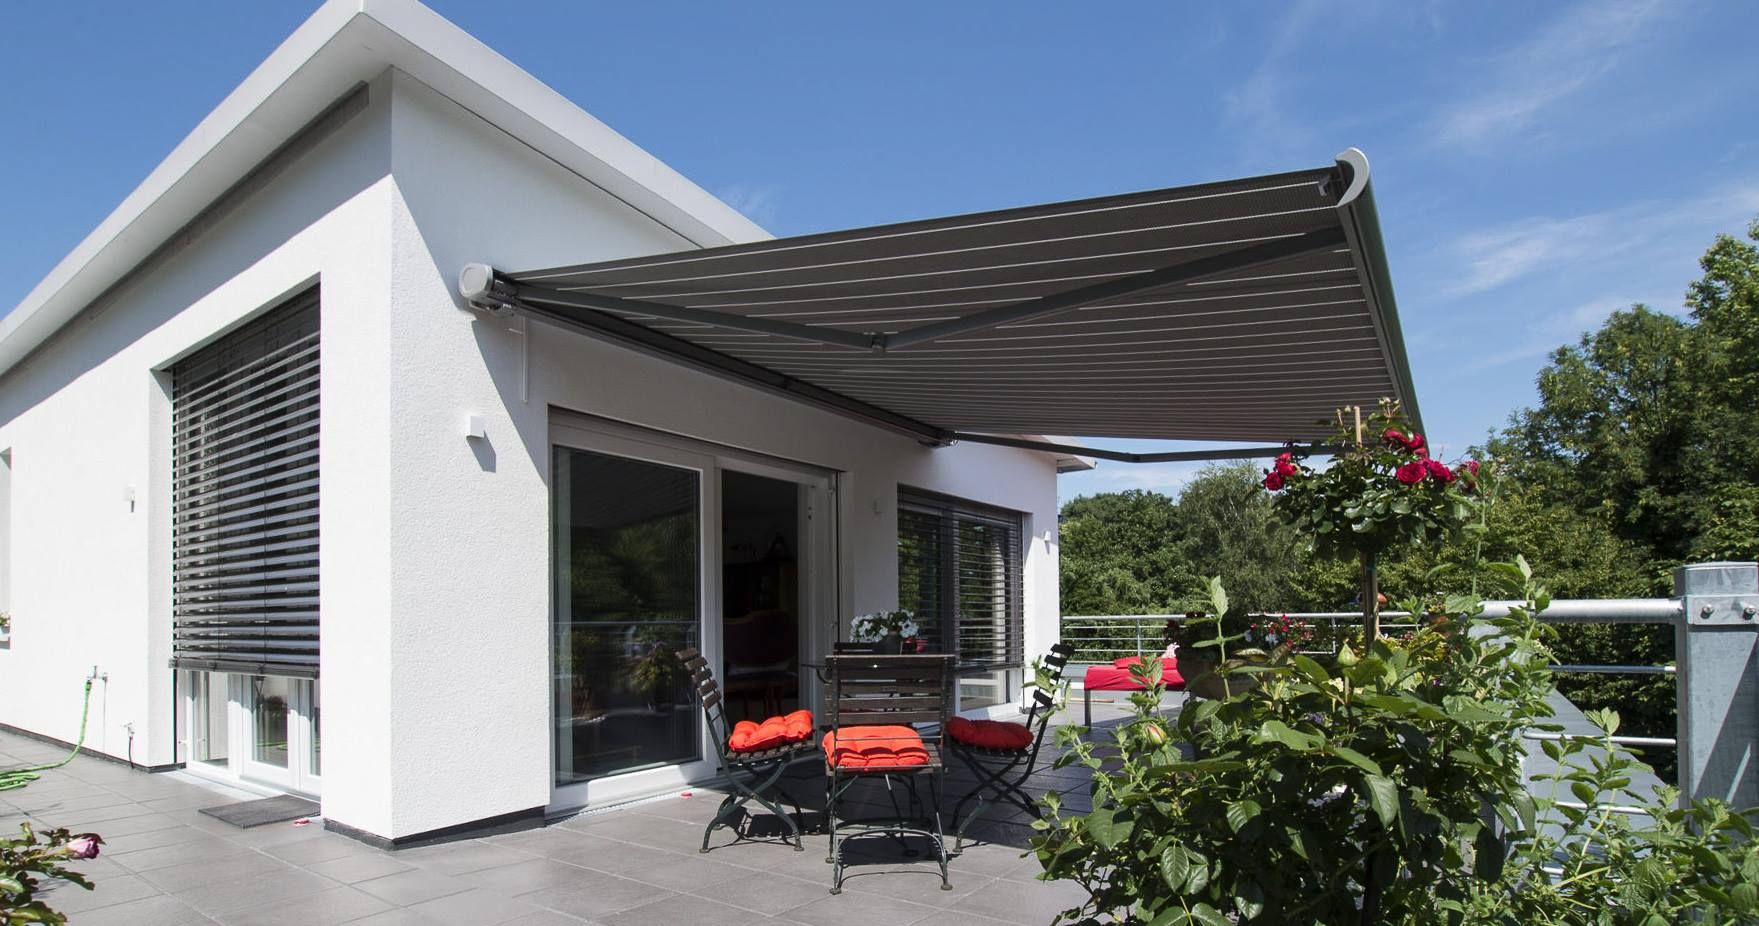 Are you looking for an extended awning to cover your whole